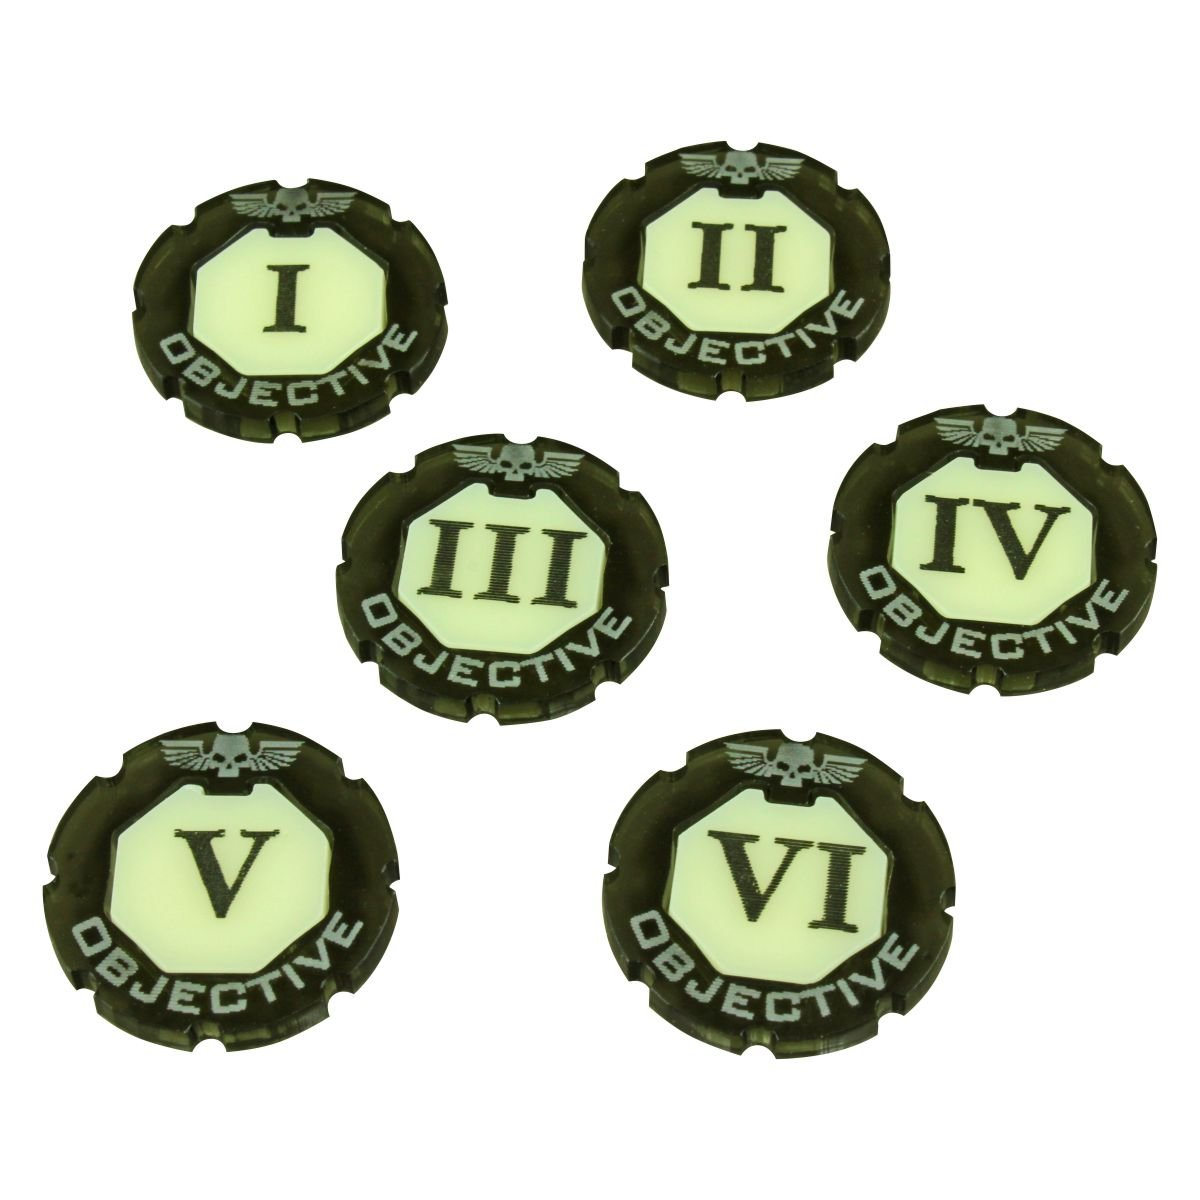 WHv8: Premium 2-tone, Objective Token Set, Numbered 1-6 (6)